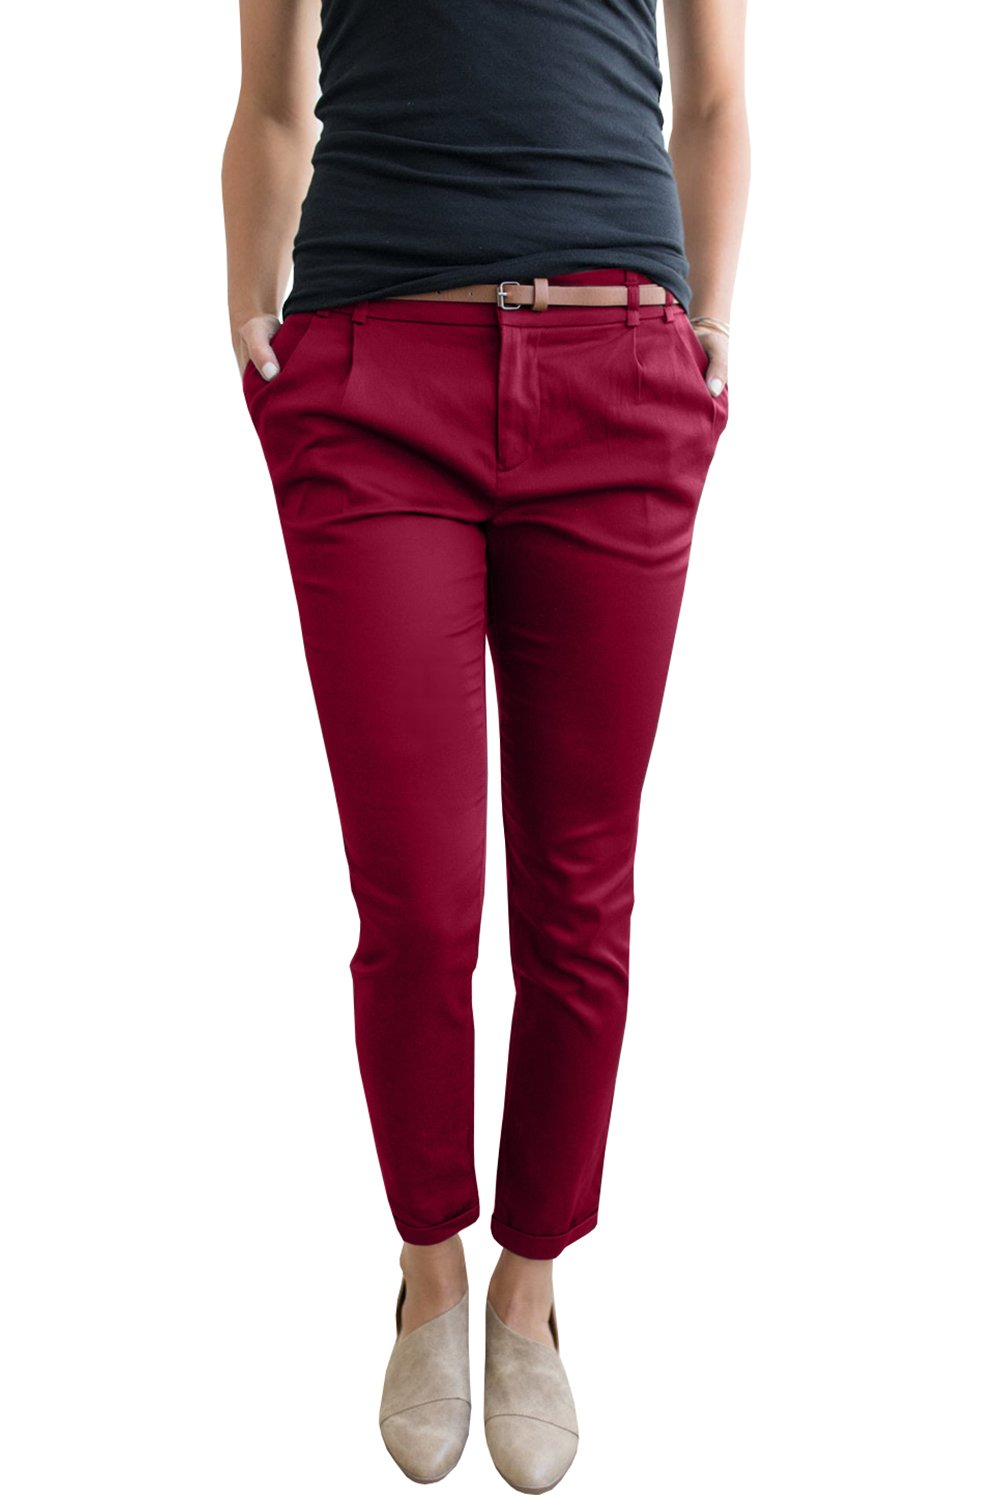 Chuanqi Womens Casual Straight Leg Cropped Ankle Comfortable Work Pants with Pockets,Wine Red,Large